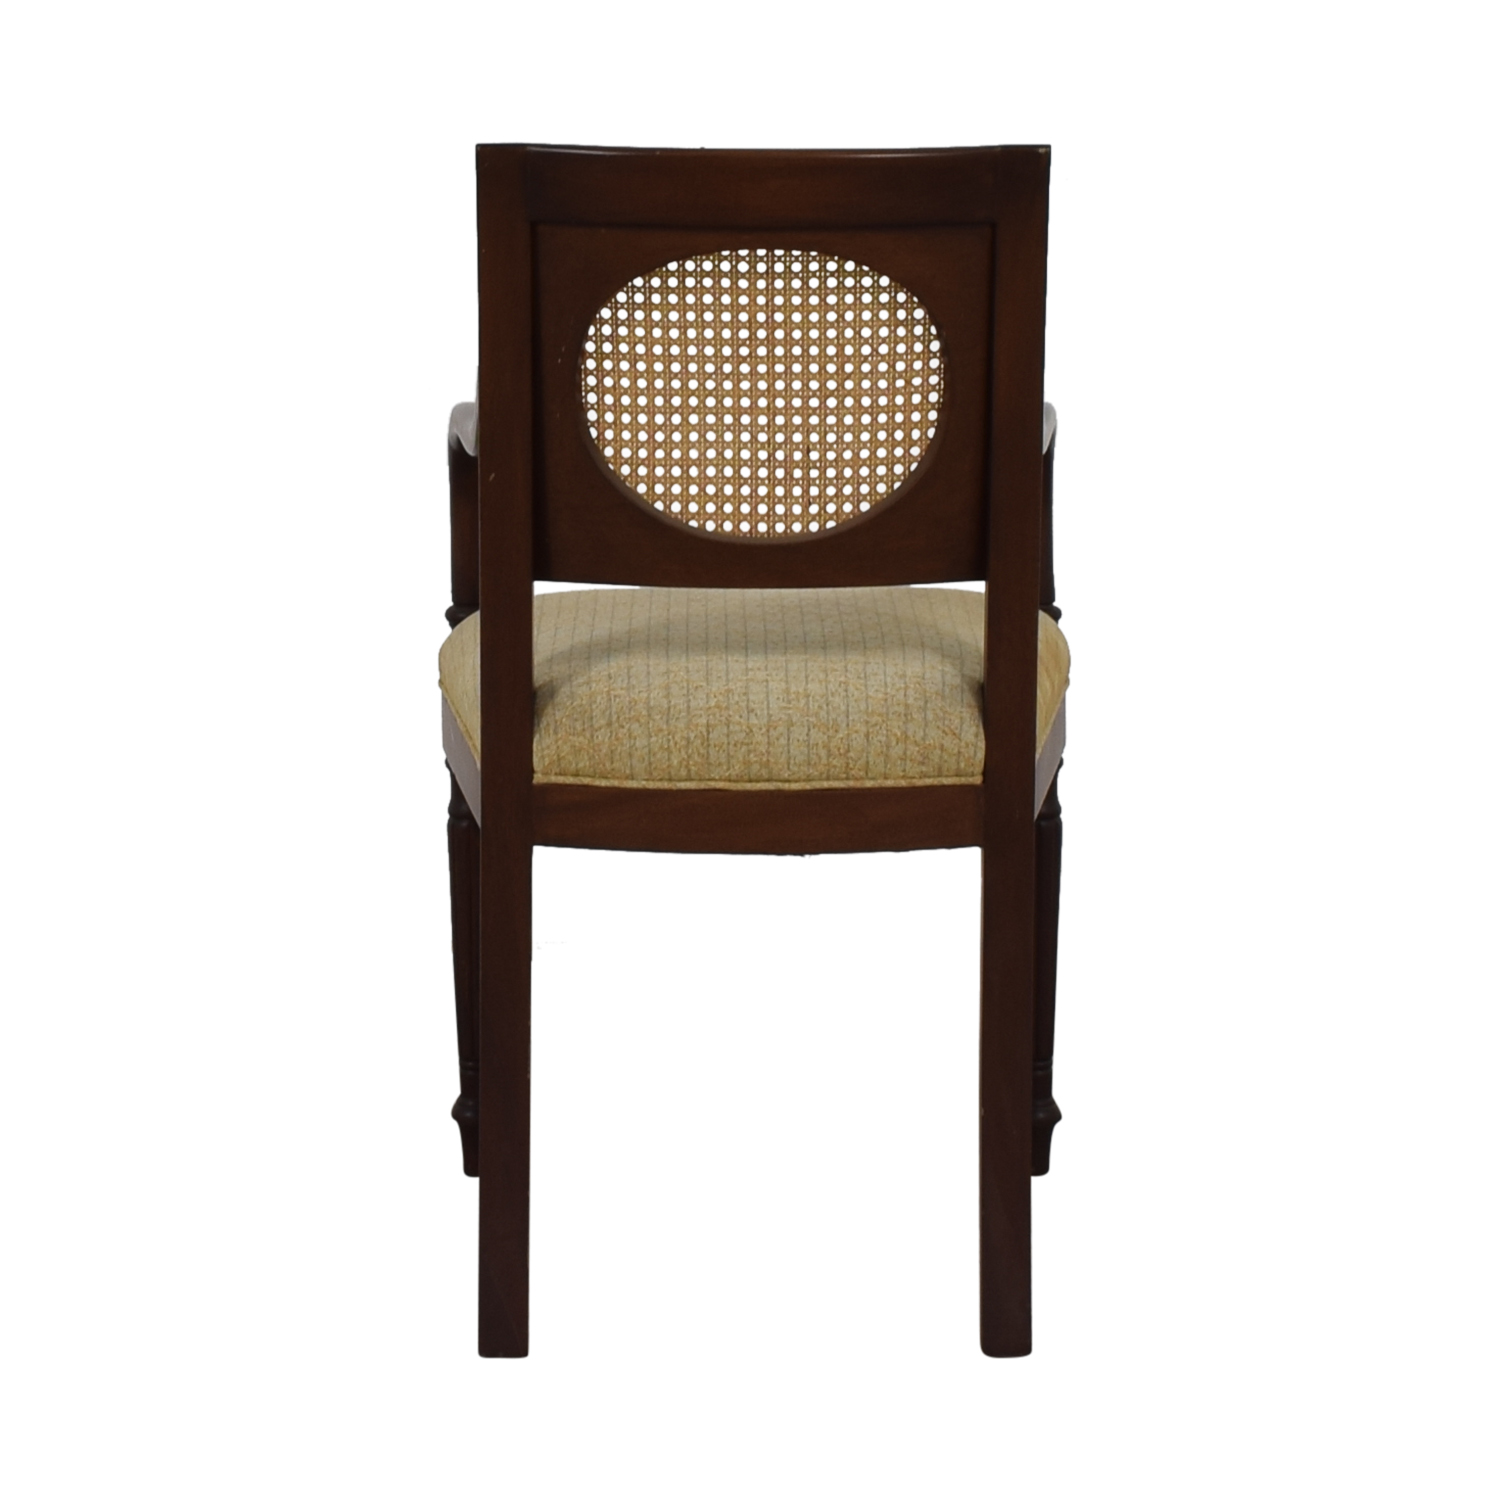 Furniture Masters Mid Century Accent Chair sale